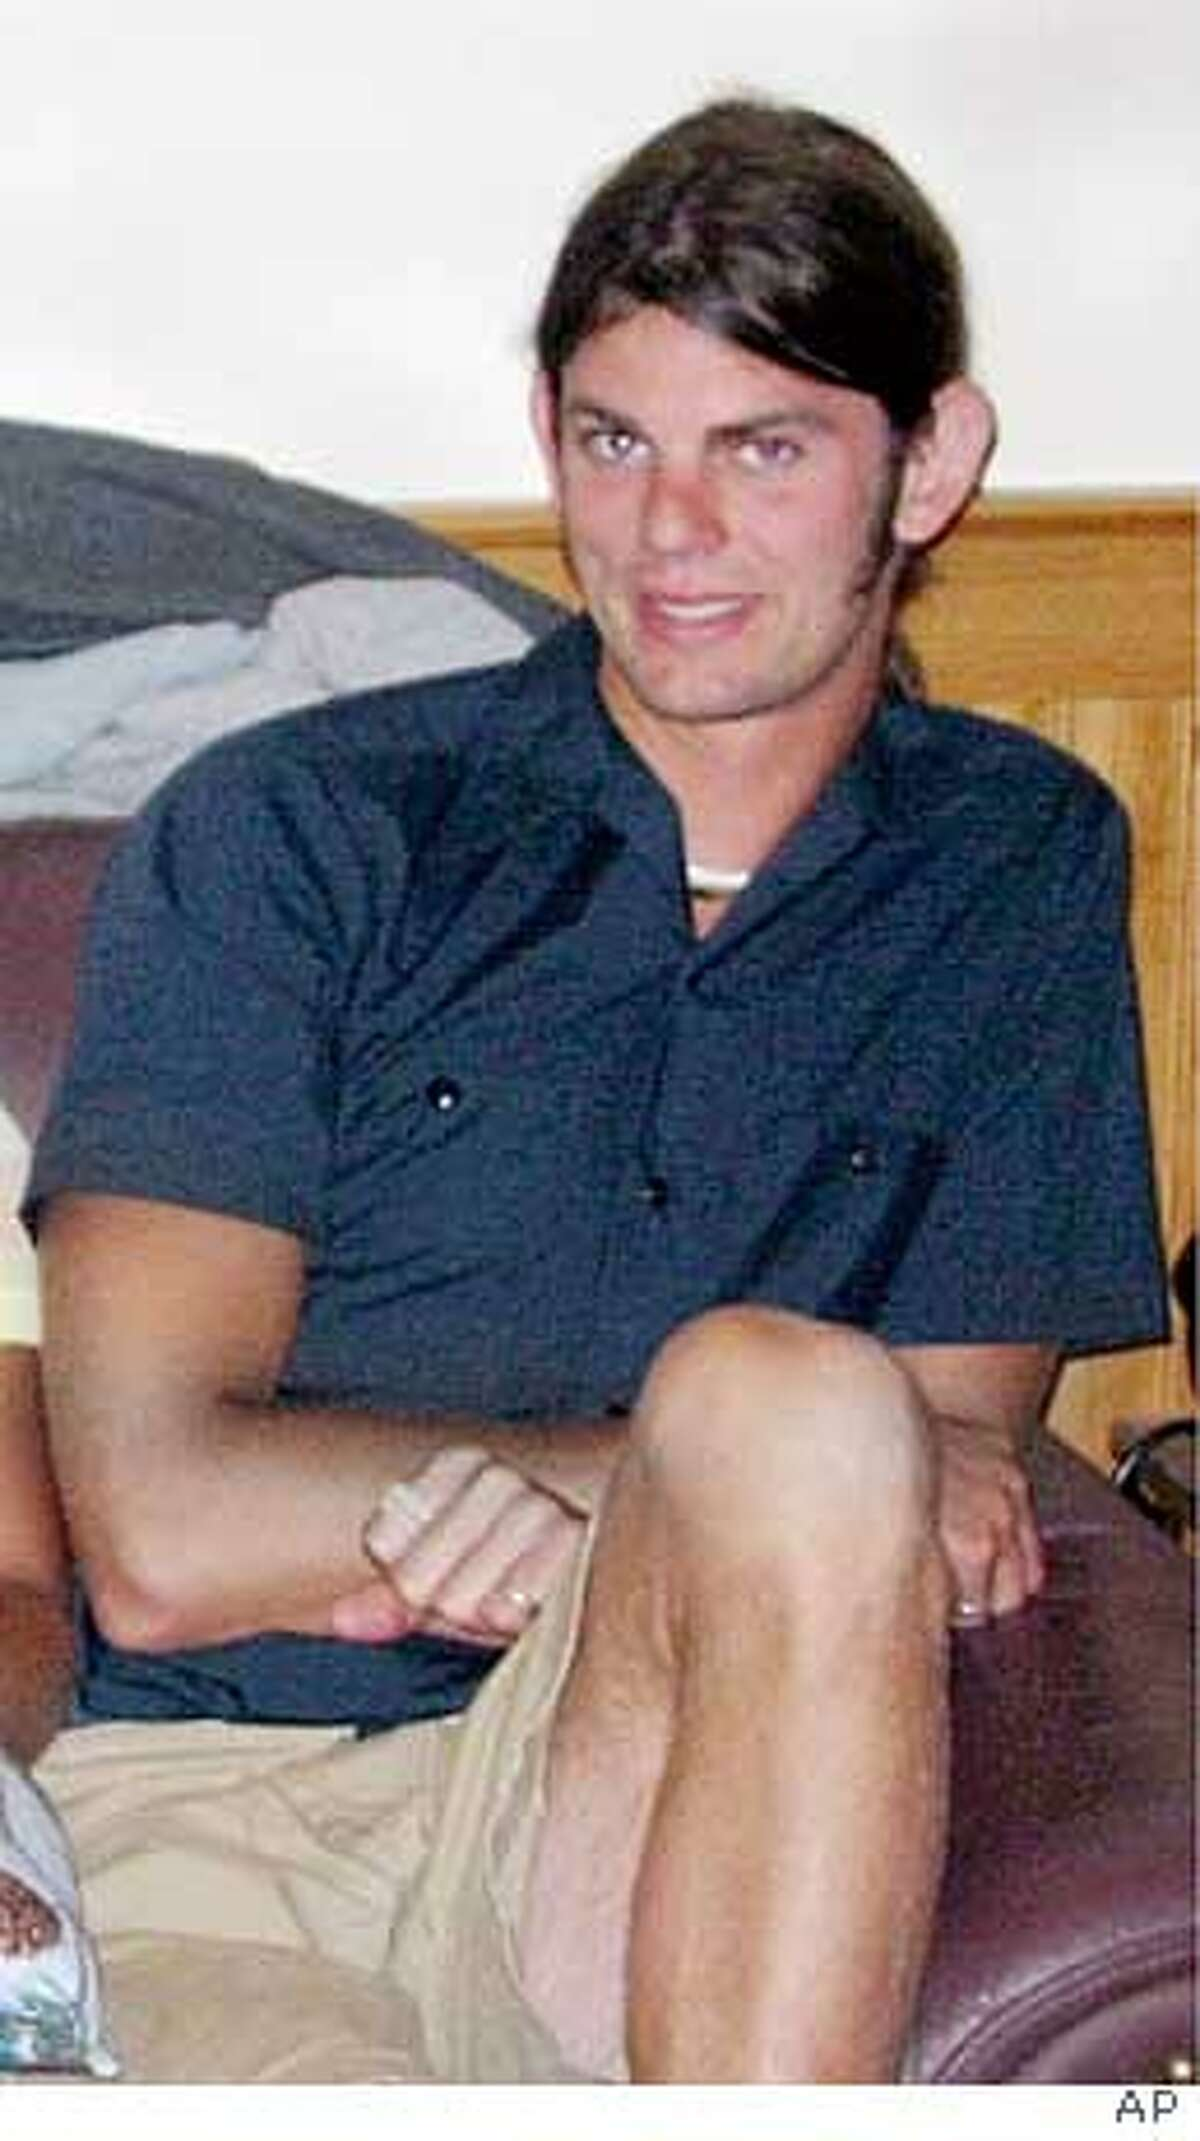 ** FILE ** Jason Allen is shown in this undated file photo. Two camp counselors who were reported missing earlier this week were murdered in their sleep on a Sonoma County beach less than a month before their wedding, authorities said. The bodies of Lindsay Cutshall, 23, and Jason Allen, 26,were discovered in sleeping bags about three miles north of Jenner on Wednesday afternoon, Aug. 18, 2004, when sheriff's deputies were rescuing a stranded hiker, the Sonoma County Sheriff's Department said. (AP Photo/Sonoma County Sheriff) Ran on: 08-21-2004 Two bodies were found at Fish Head Beach in Sonoma County. Ran on: 08-21-2004 Two bodies were found at Fish Head Beach in Sonoma County. Ran on: 08-22-2004 Lindsay Cutshall Ran on: 08-22-2004 Lindsay Cutshall Ran on: 08-23-2004 Jason Allen Ran on: 08-23-2004 Jason Allen